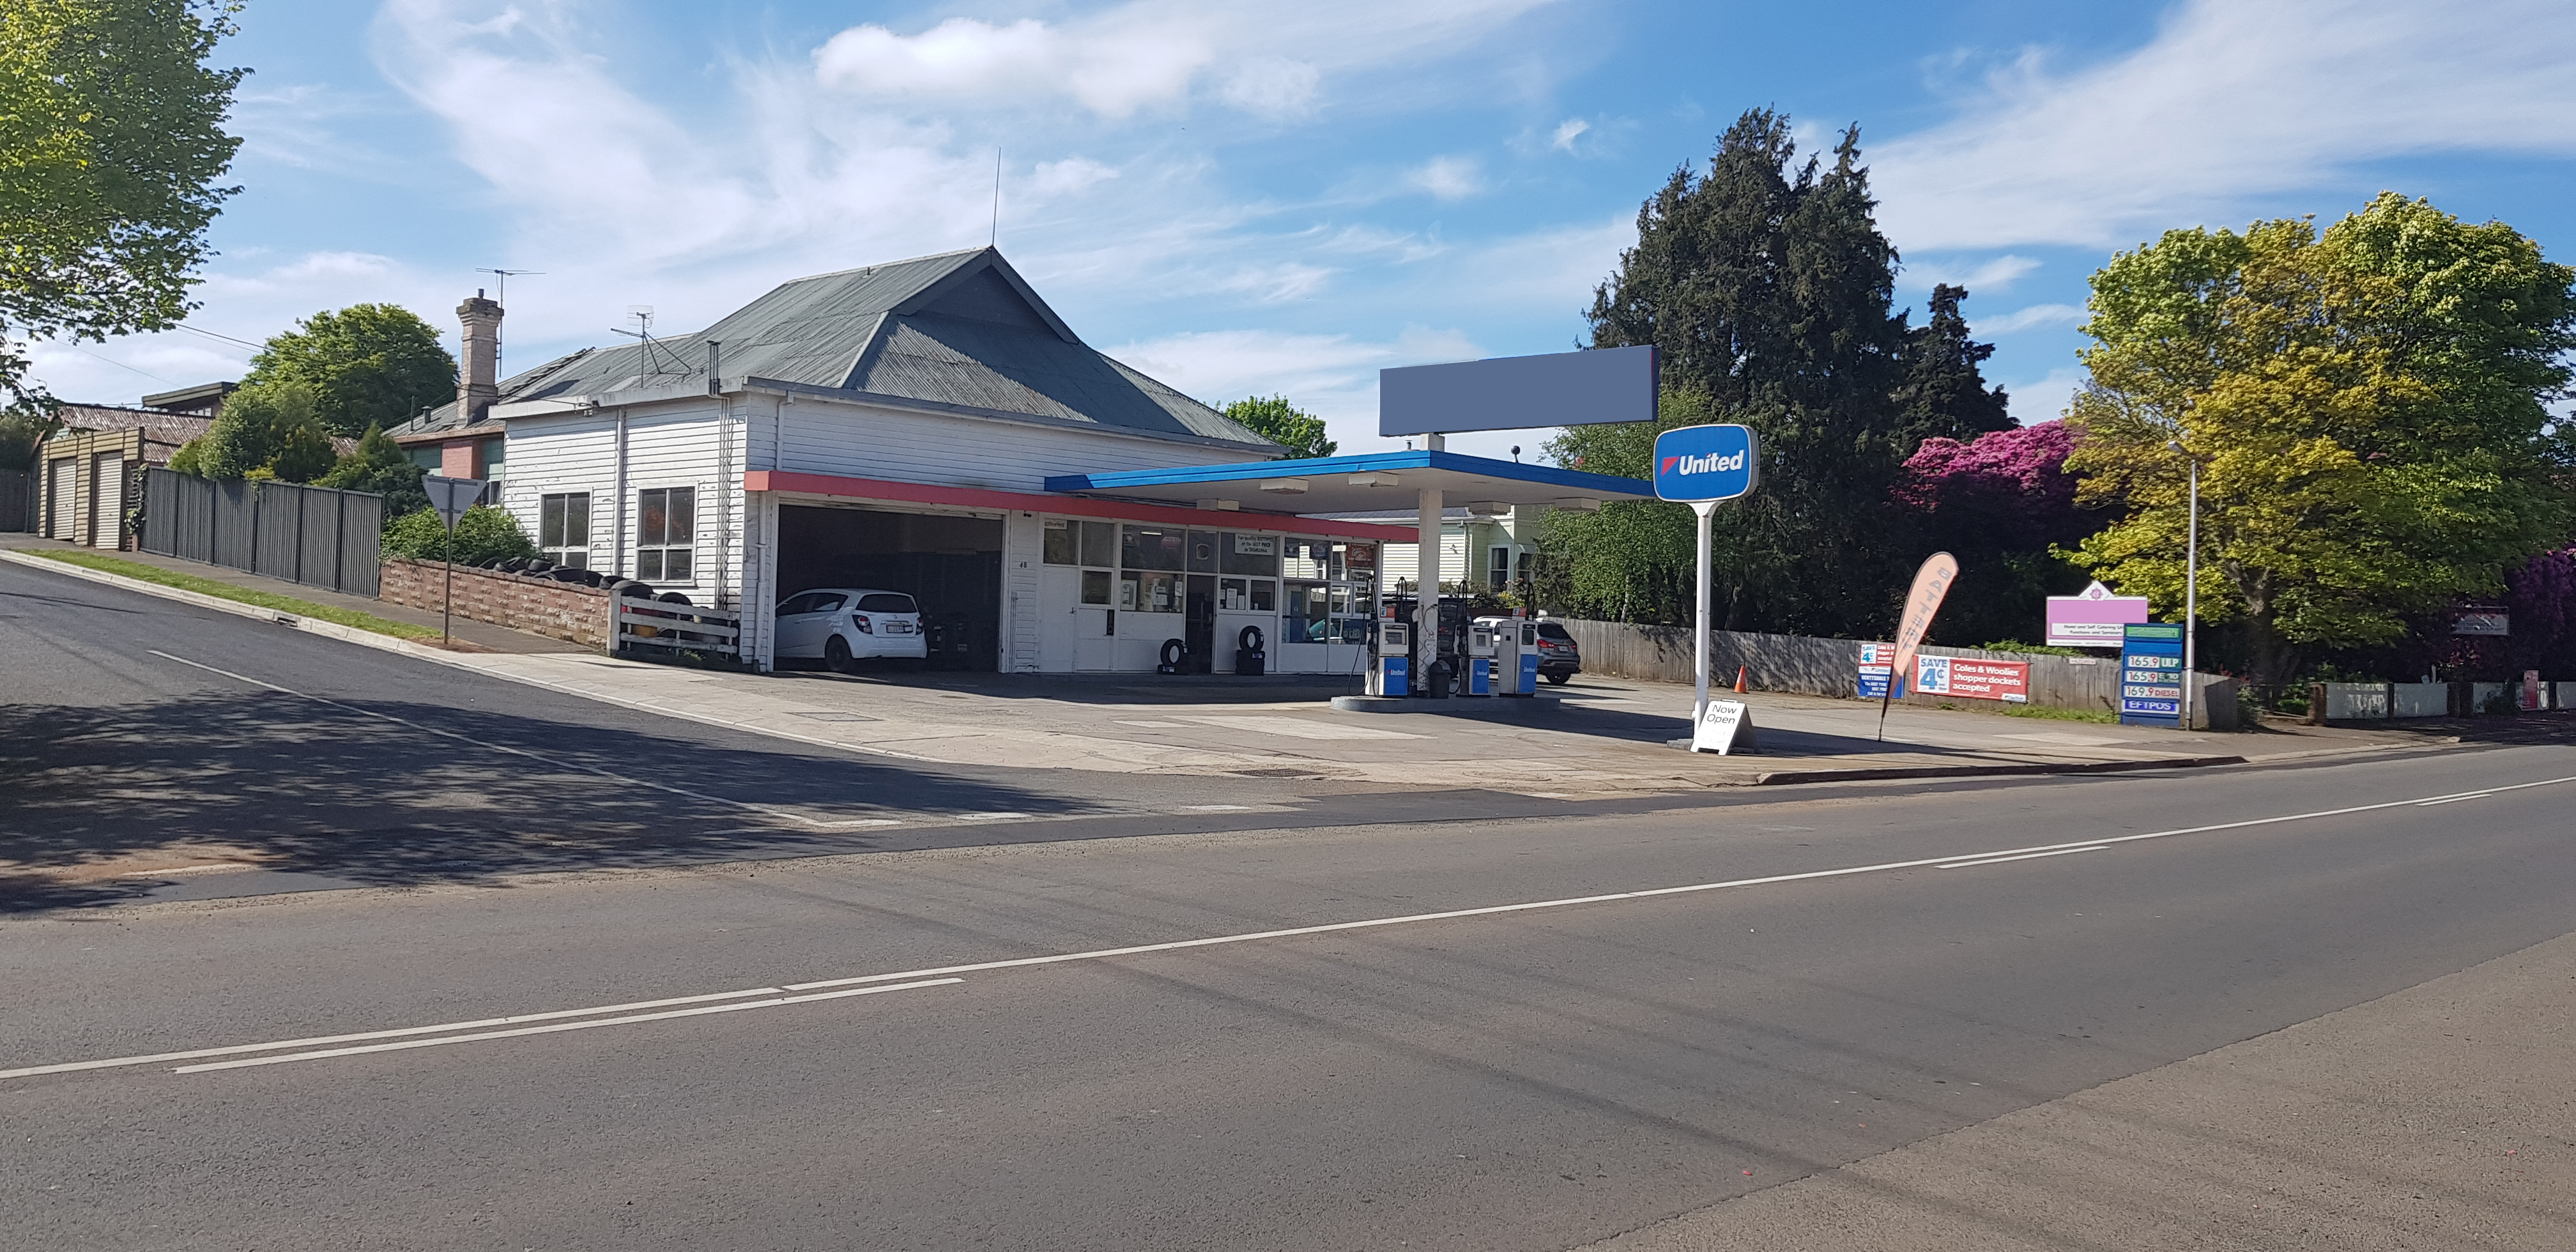 Freehold Service Station and Workshop Business plus Dwelling in Tasmania